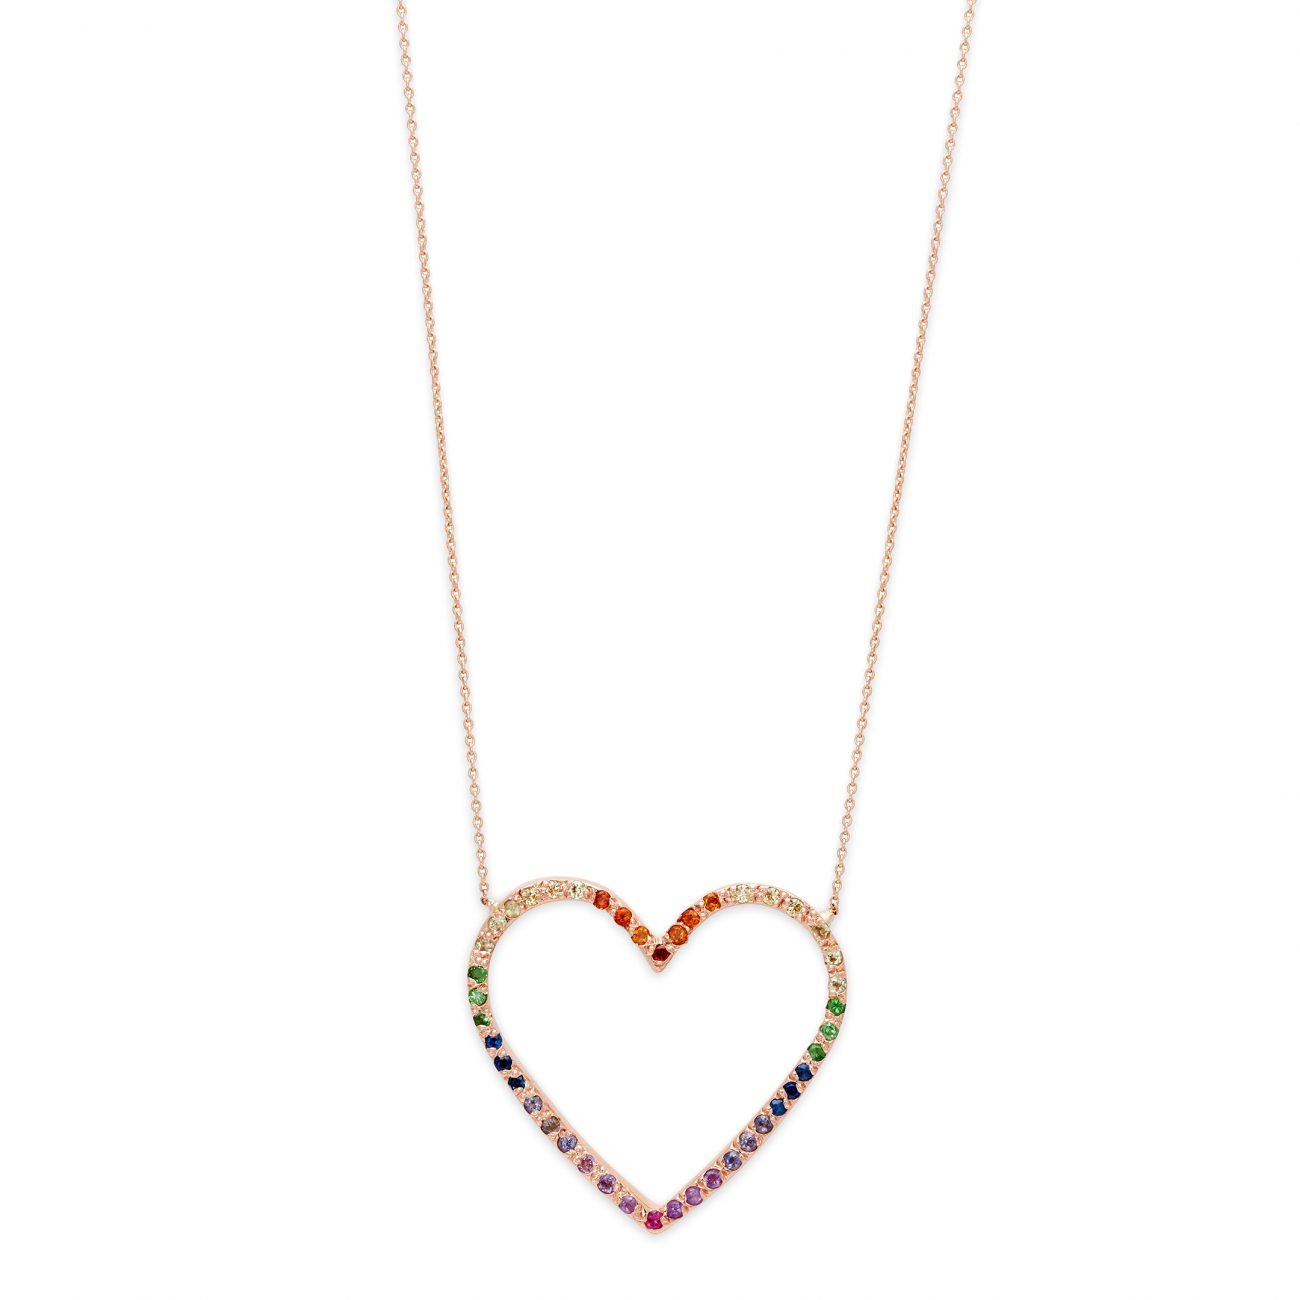 Necklace_PGoldLargeRainbowOpenHeart